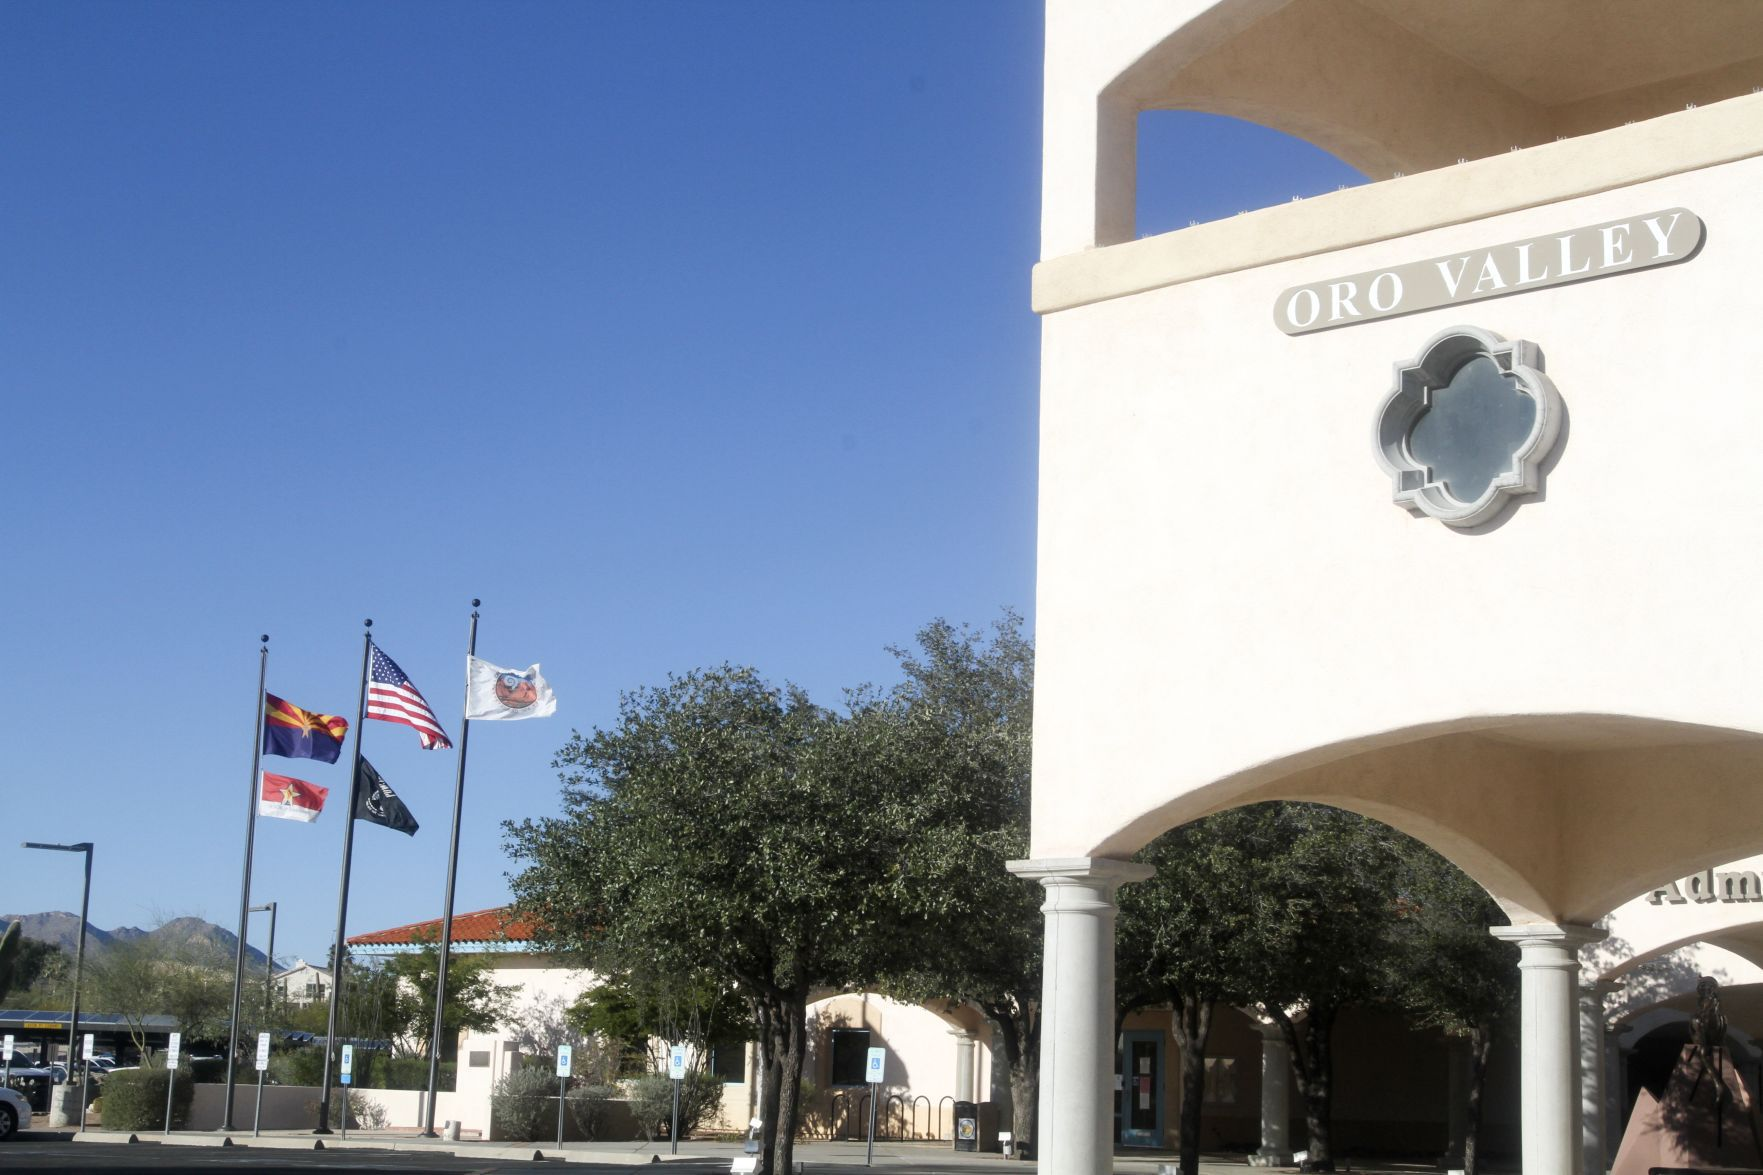 Oro Valley council unanimously passes $142.9 million budget | Tucson Local Media